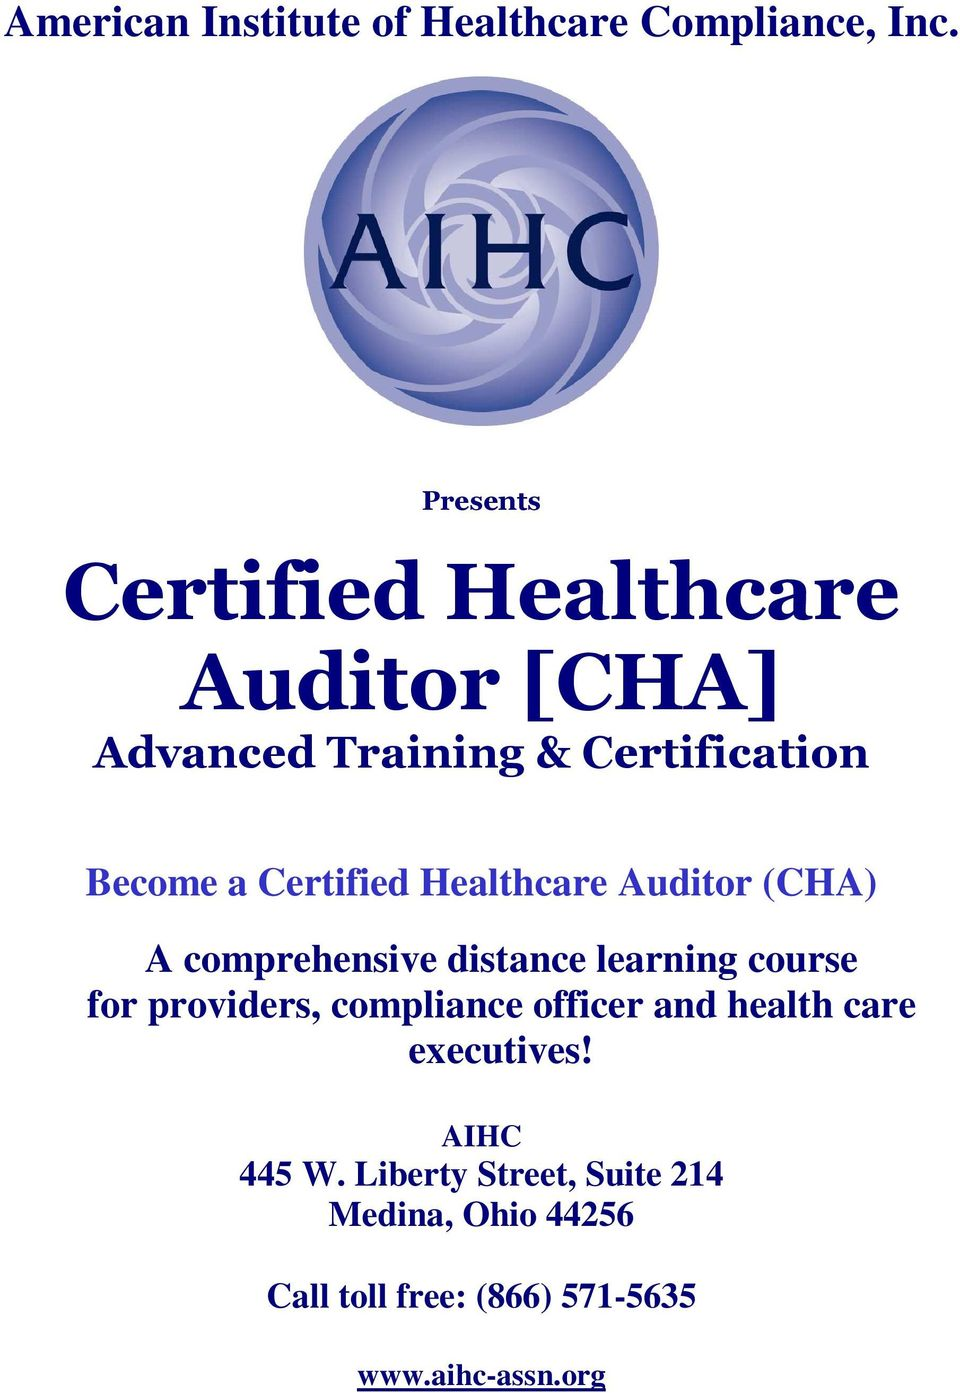 course for providers, compliance officer and health care executives!